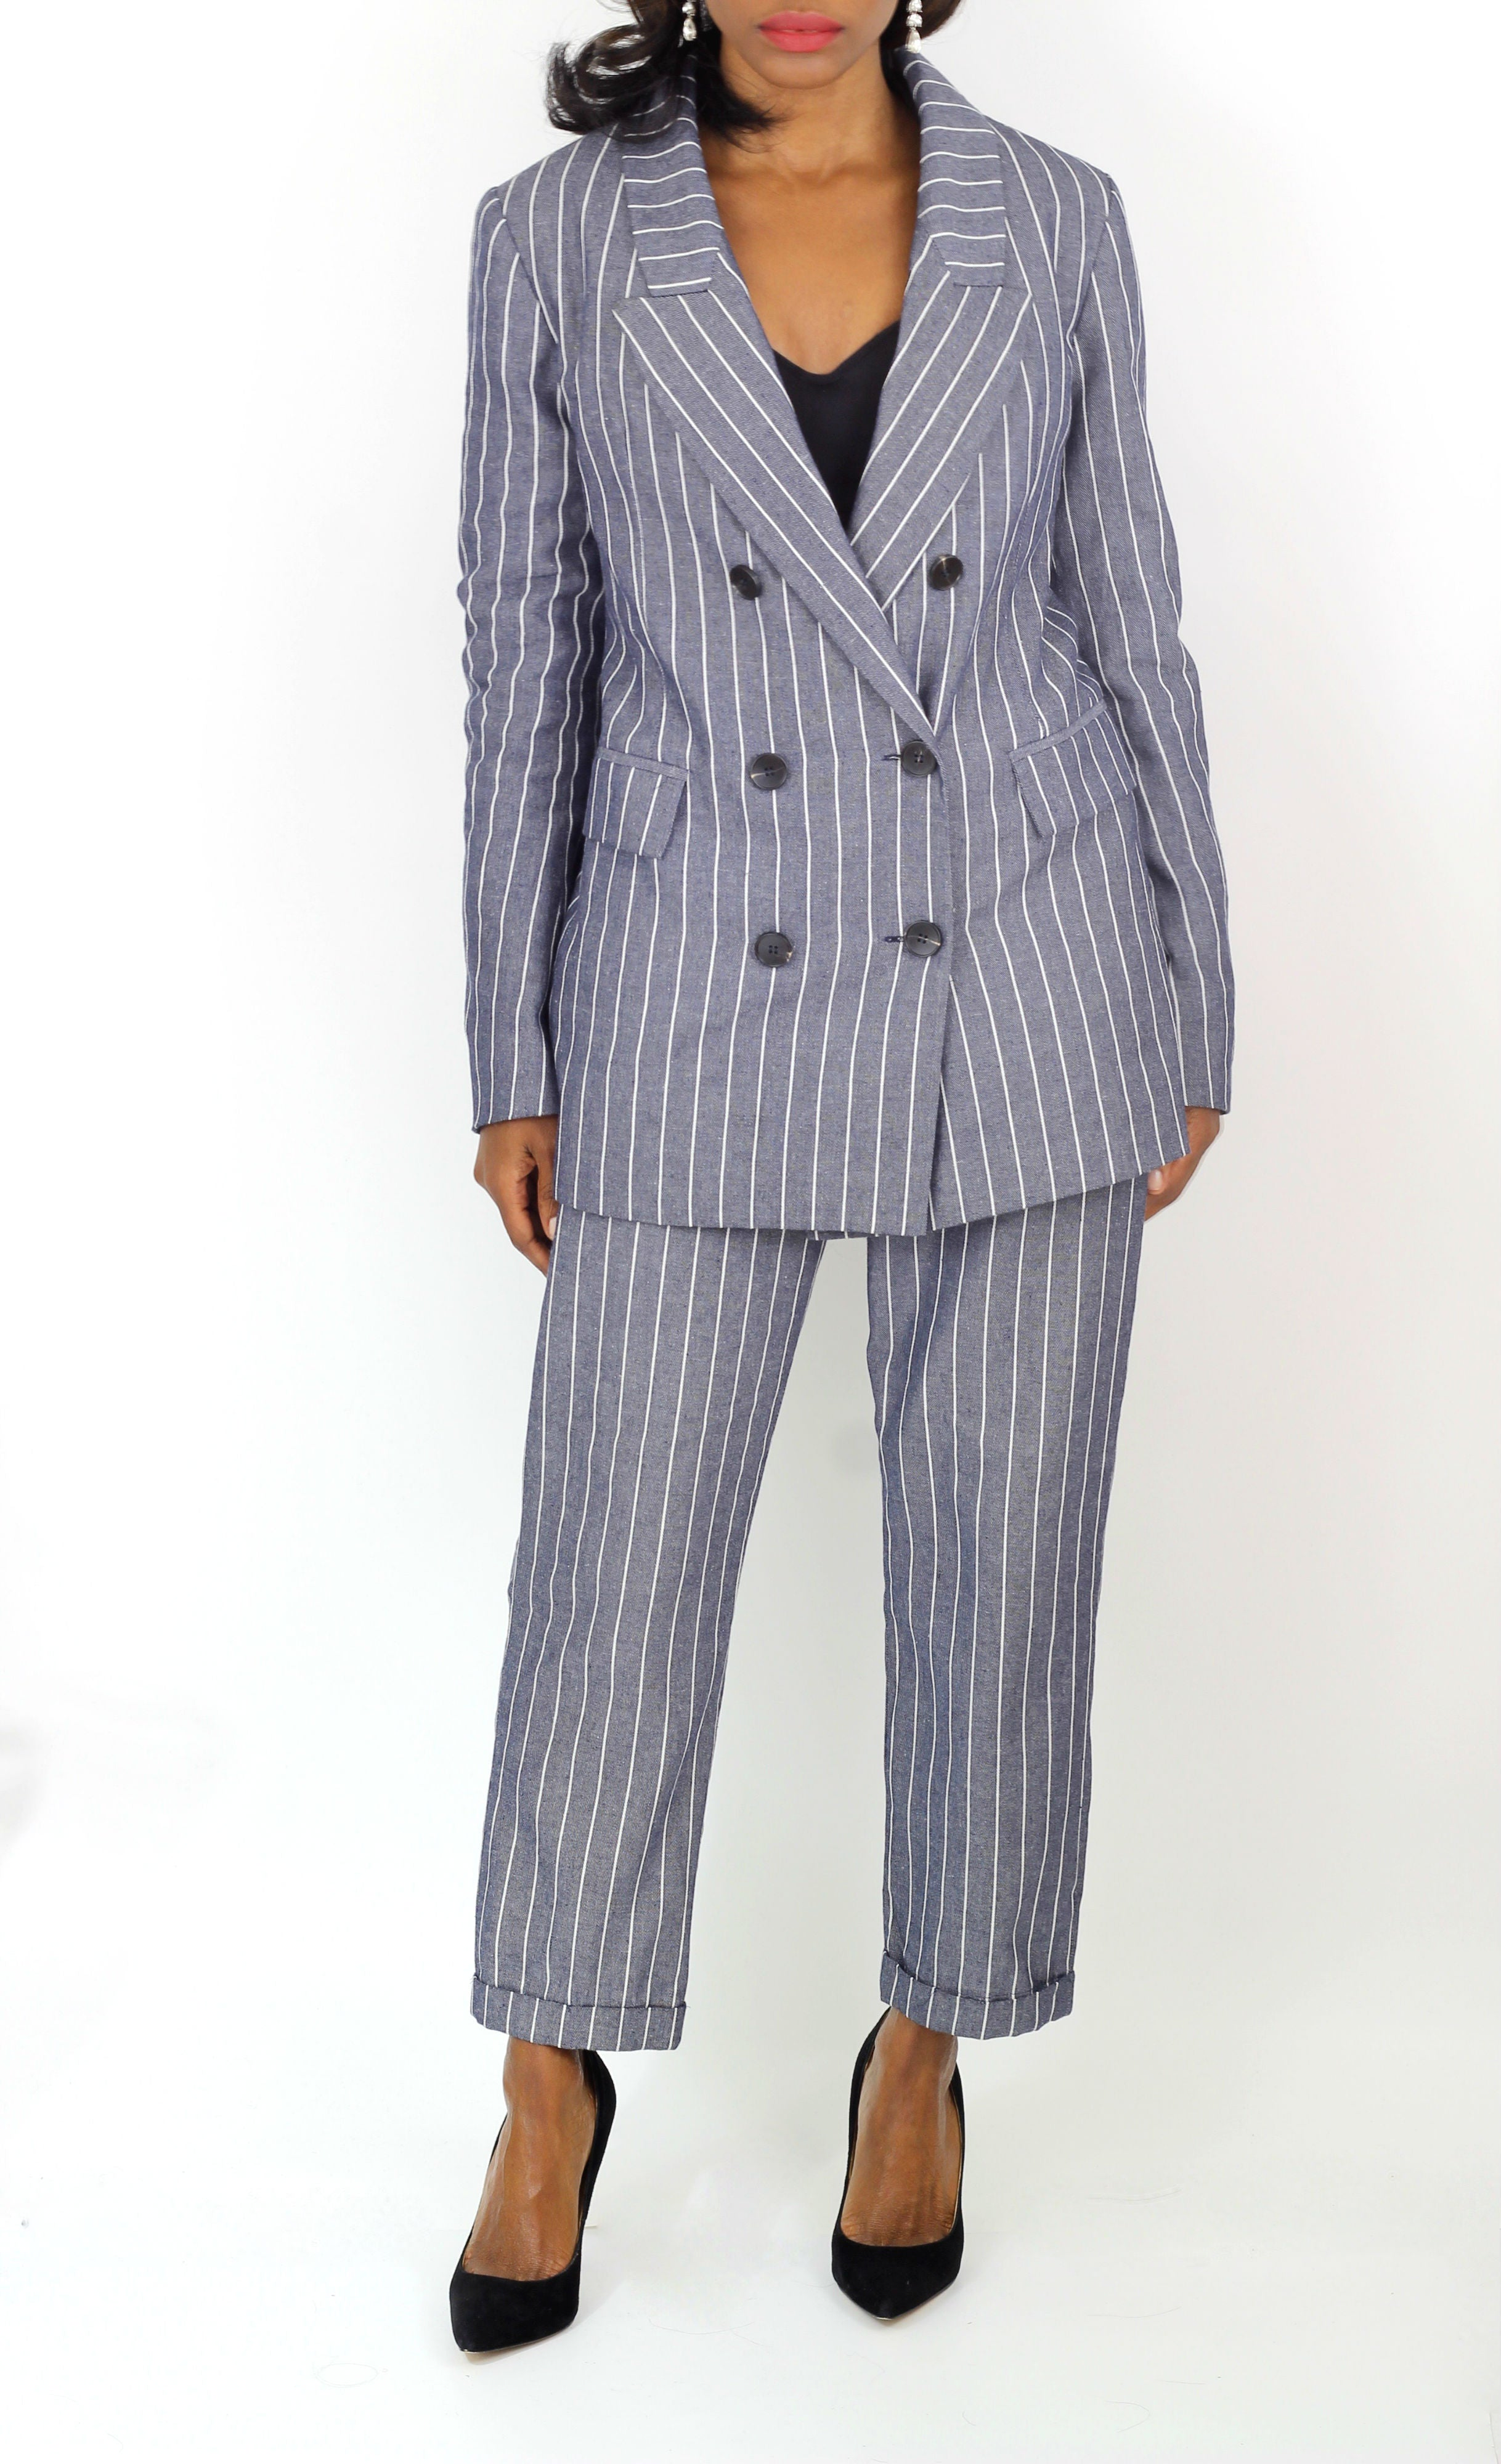 Re:Named pinstripe double breasted blazer and heels. Shop Coveted Style